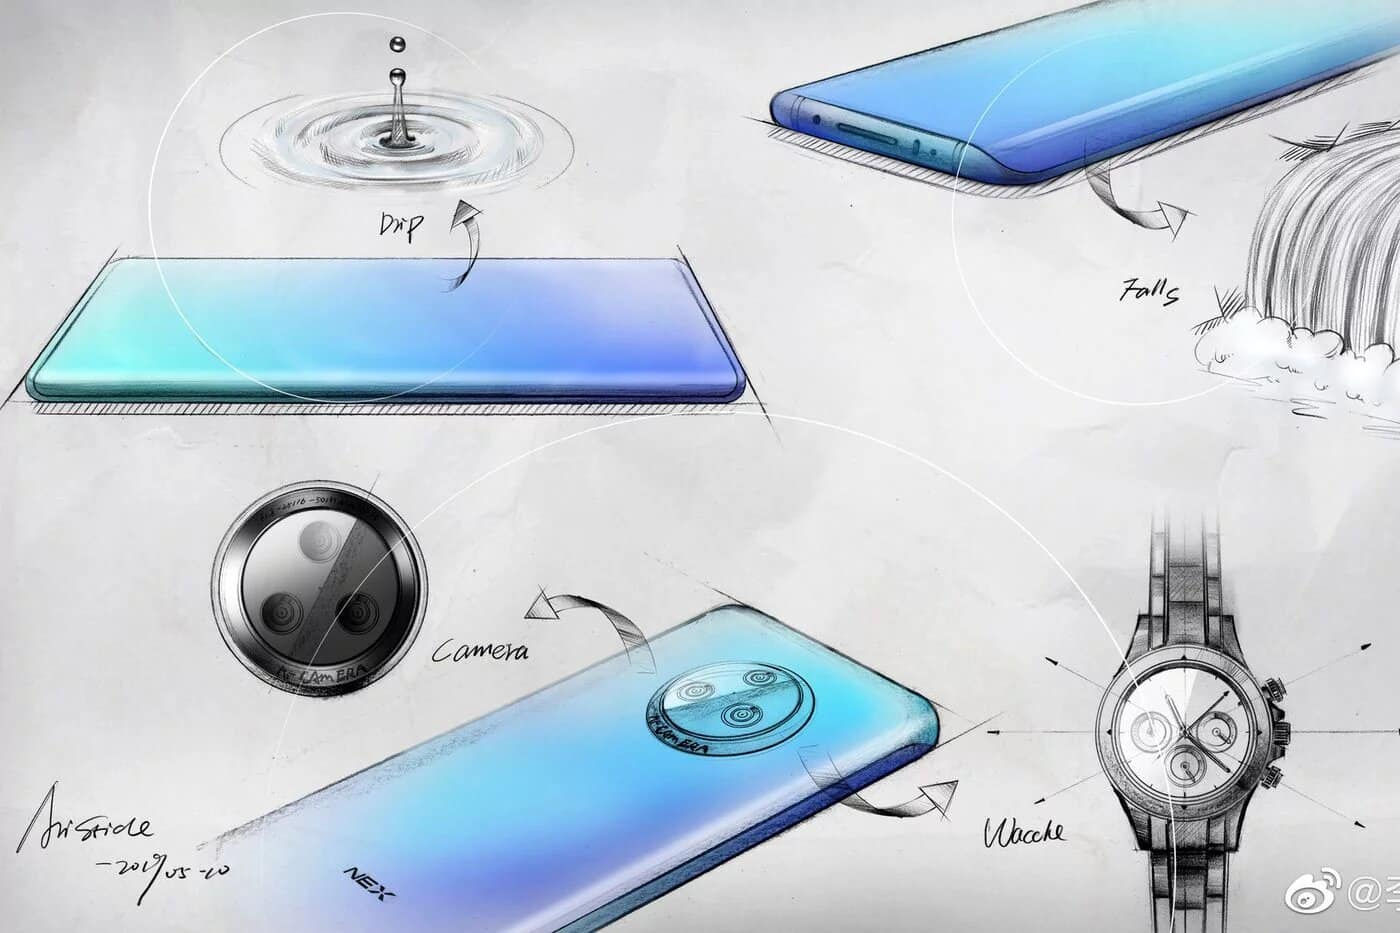 Vivo Product Manager showed sketches of NEX 3 smartphone